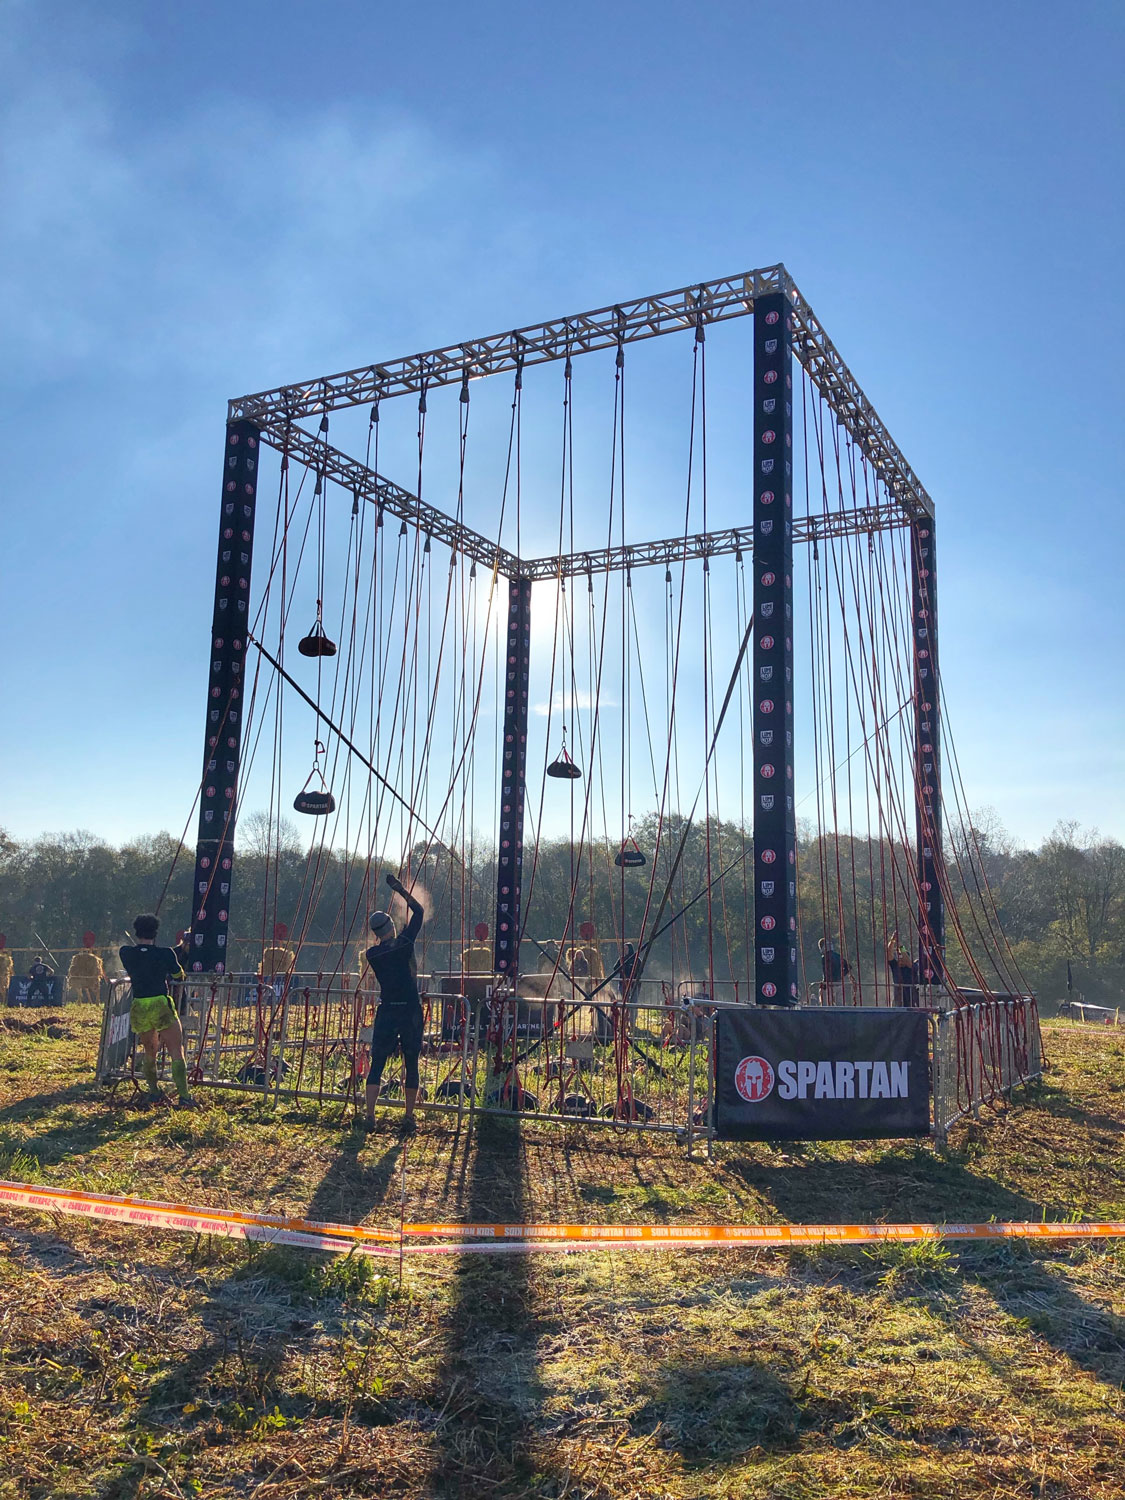 Spartan Race Carolinas - things to know